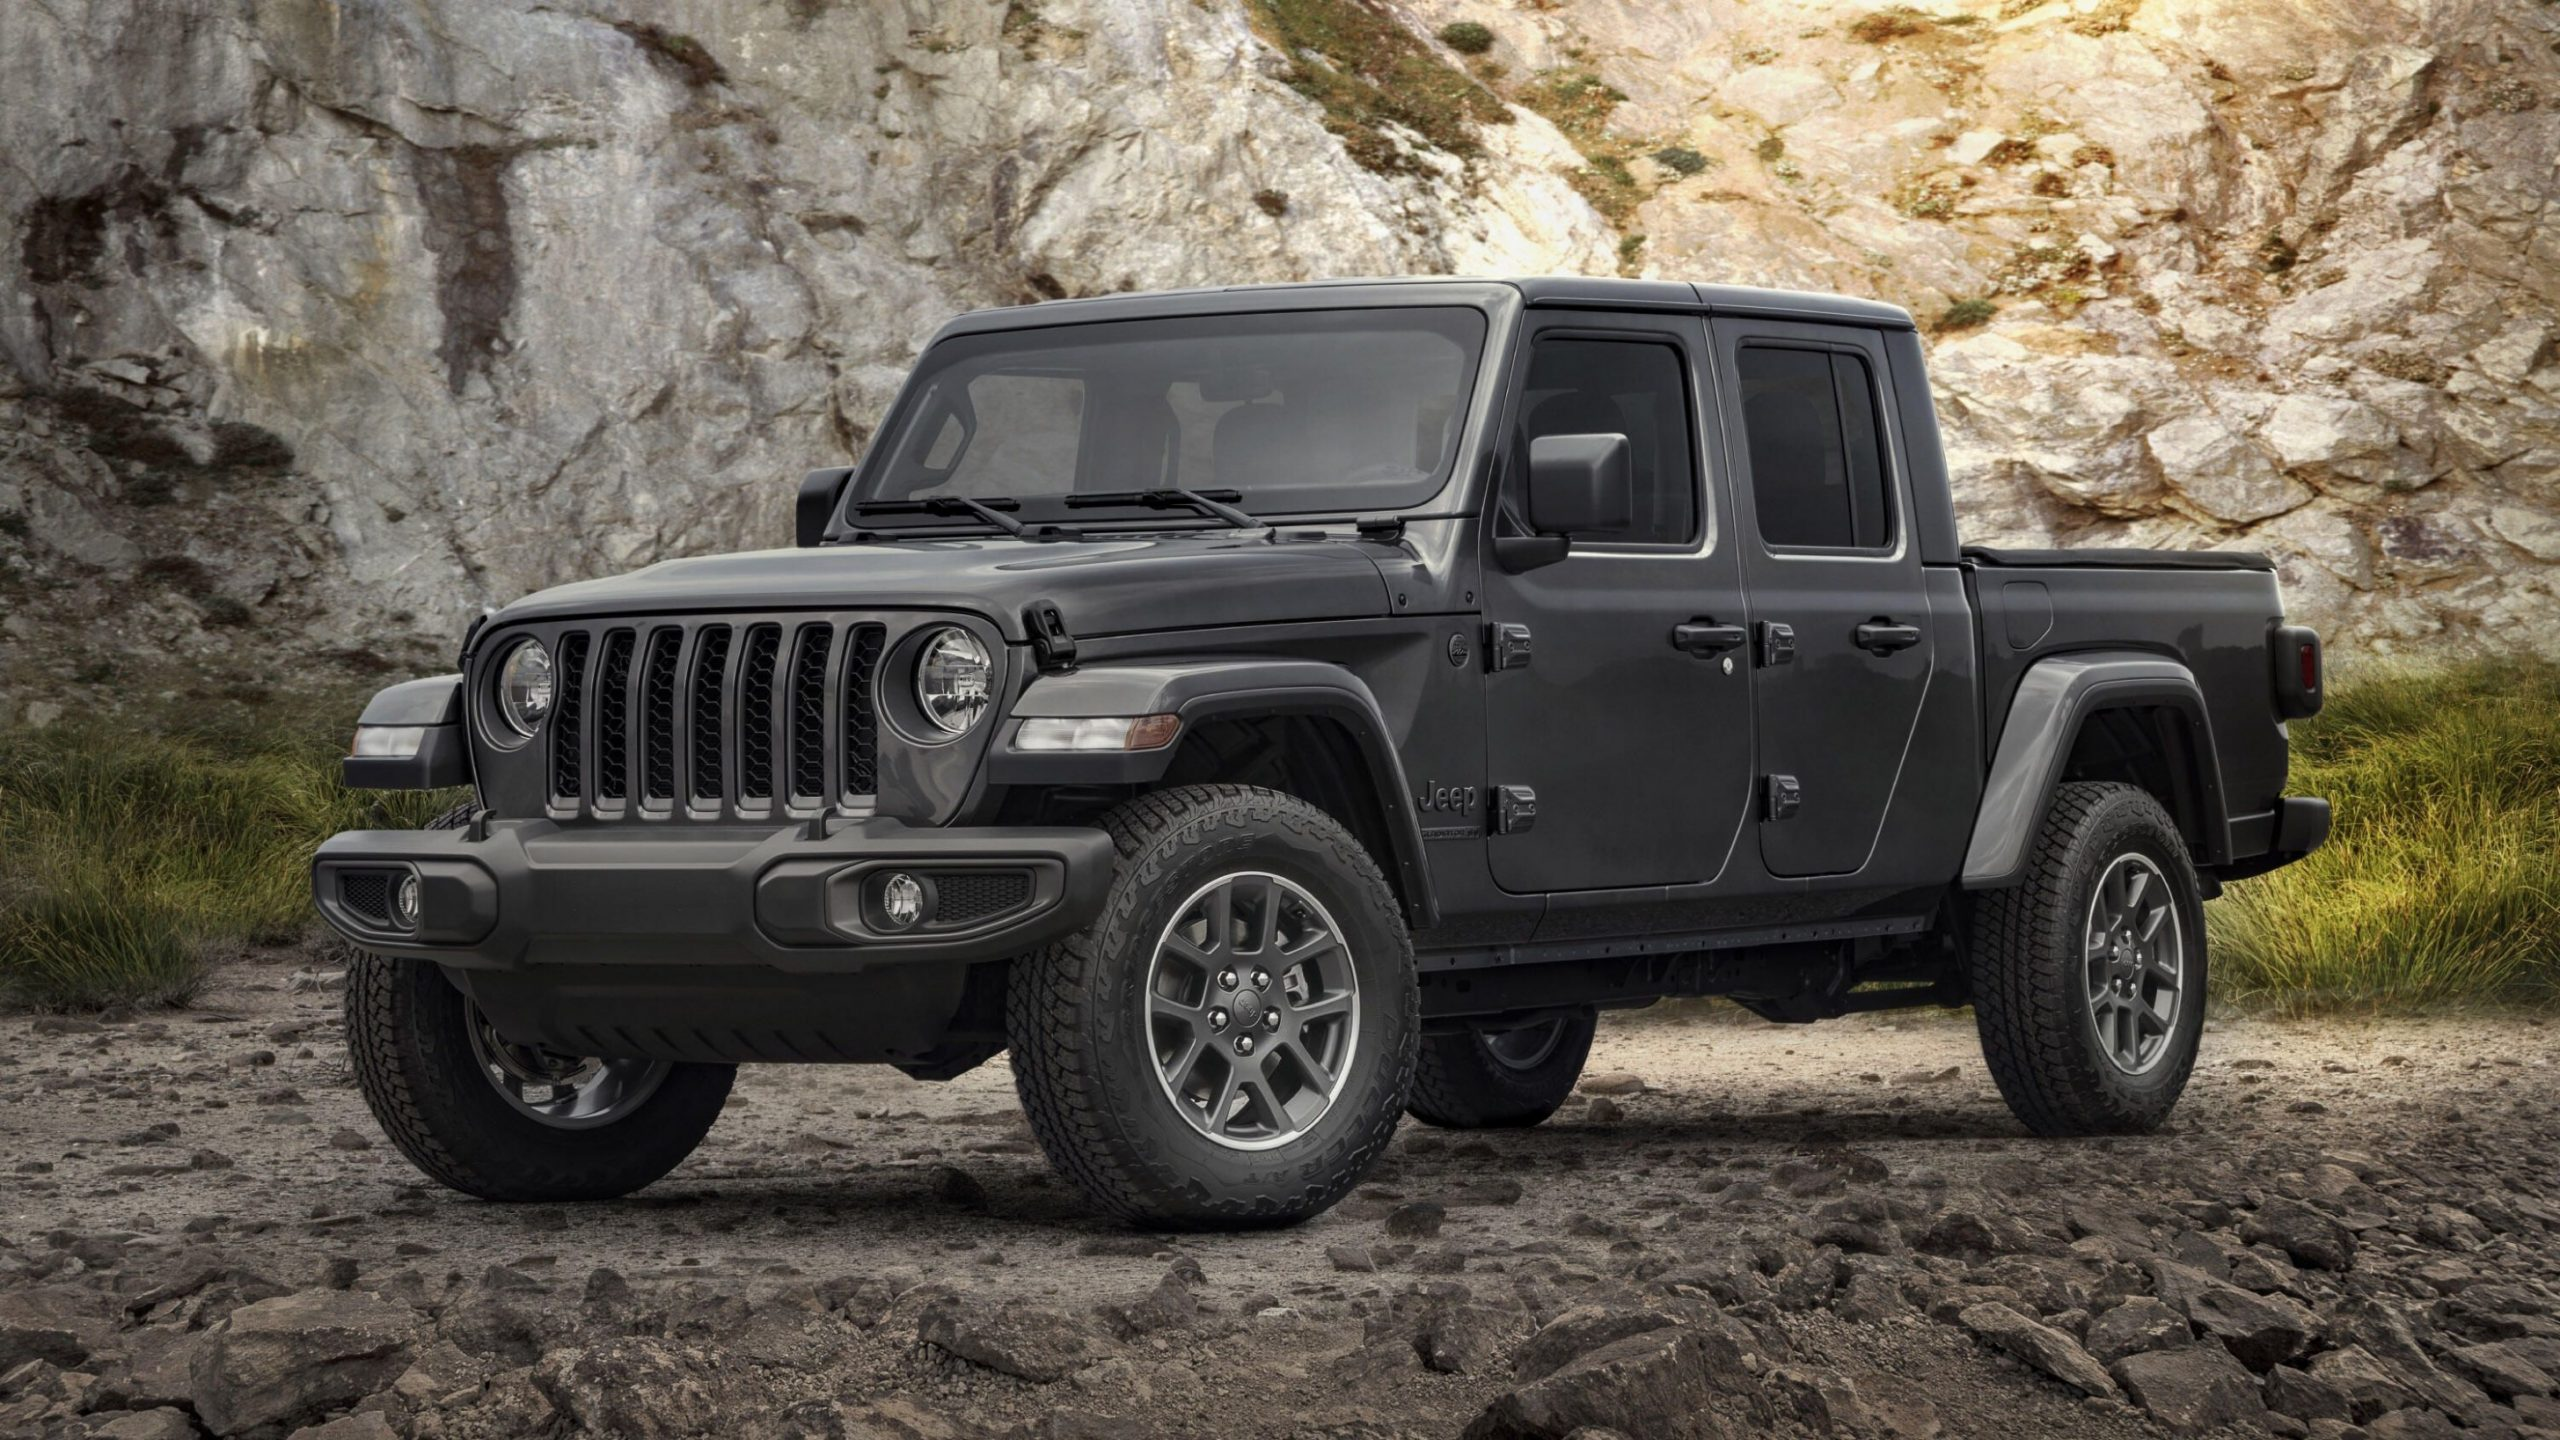 5 Jeep Gladiator 5th Anniversary pricing and pics revealed - Price For 2021 Jeep Gladiator